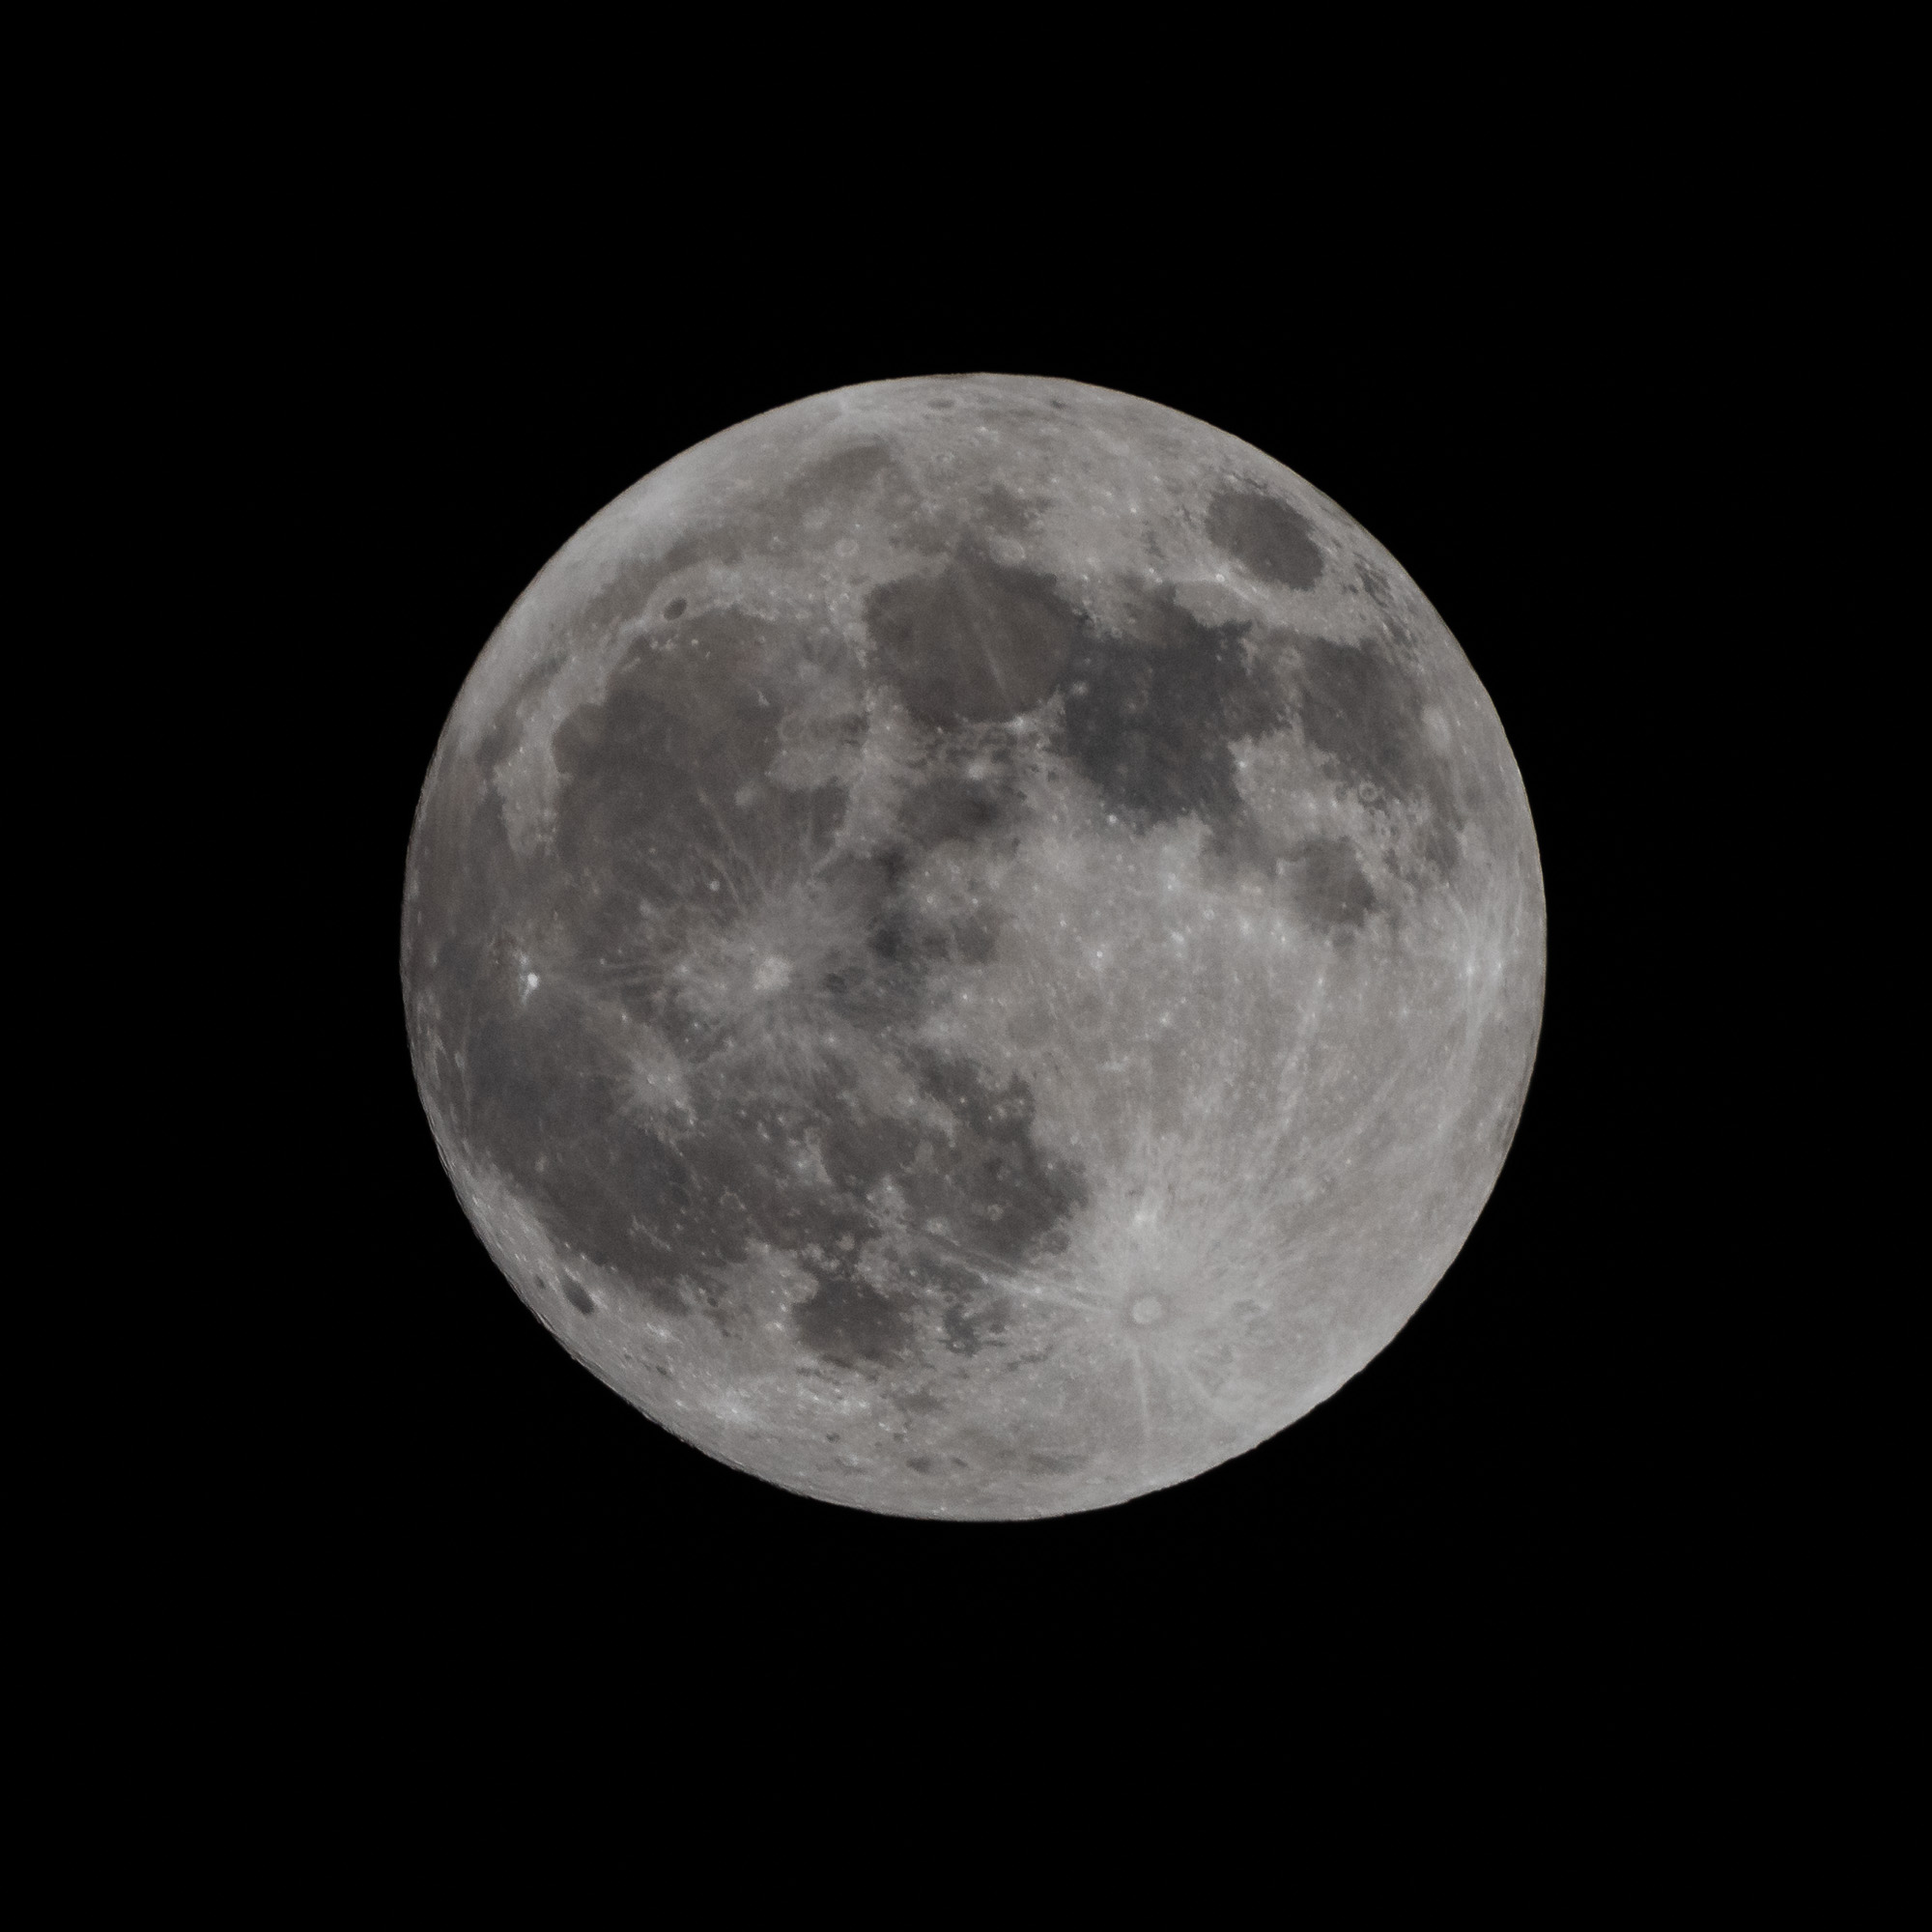 Full moon. Nikon D810, Nikon 200-400mm f/4 at f/16, ISO 400, 1/250 sec, manual focus.